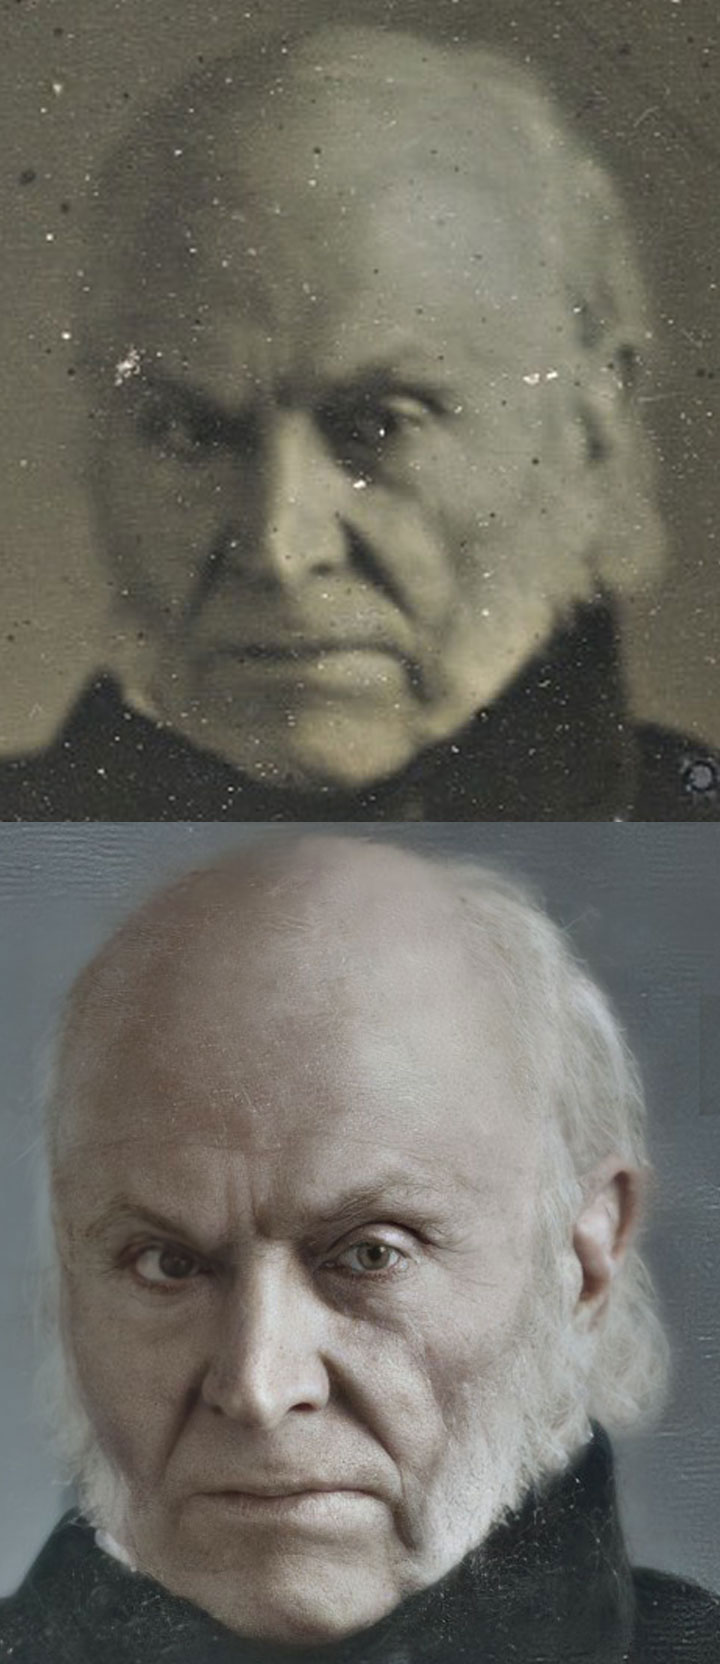 Before and after JQA images